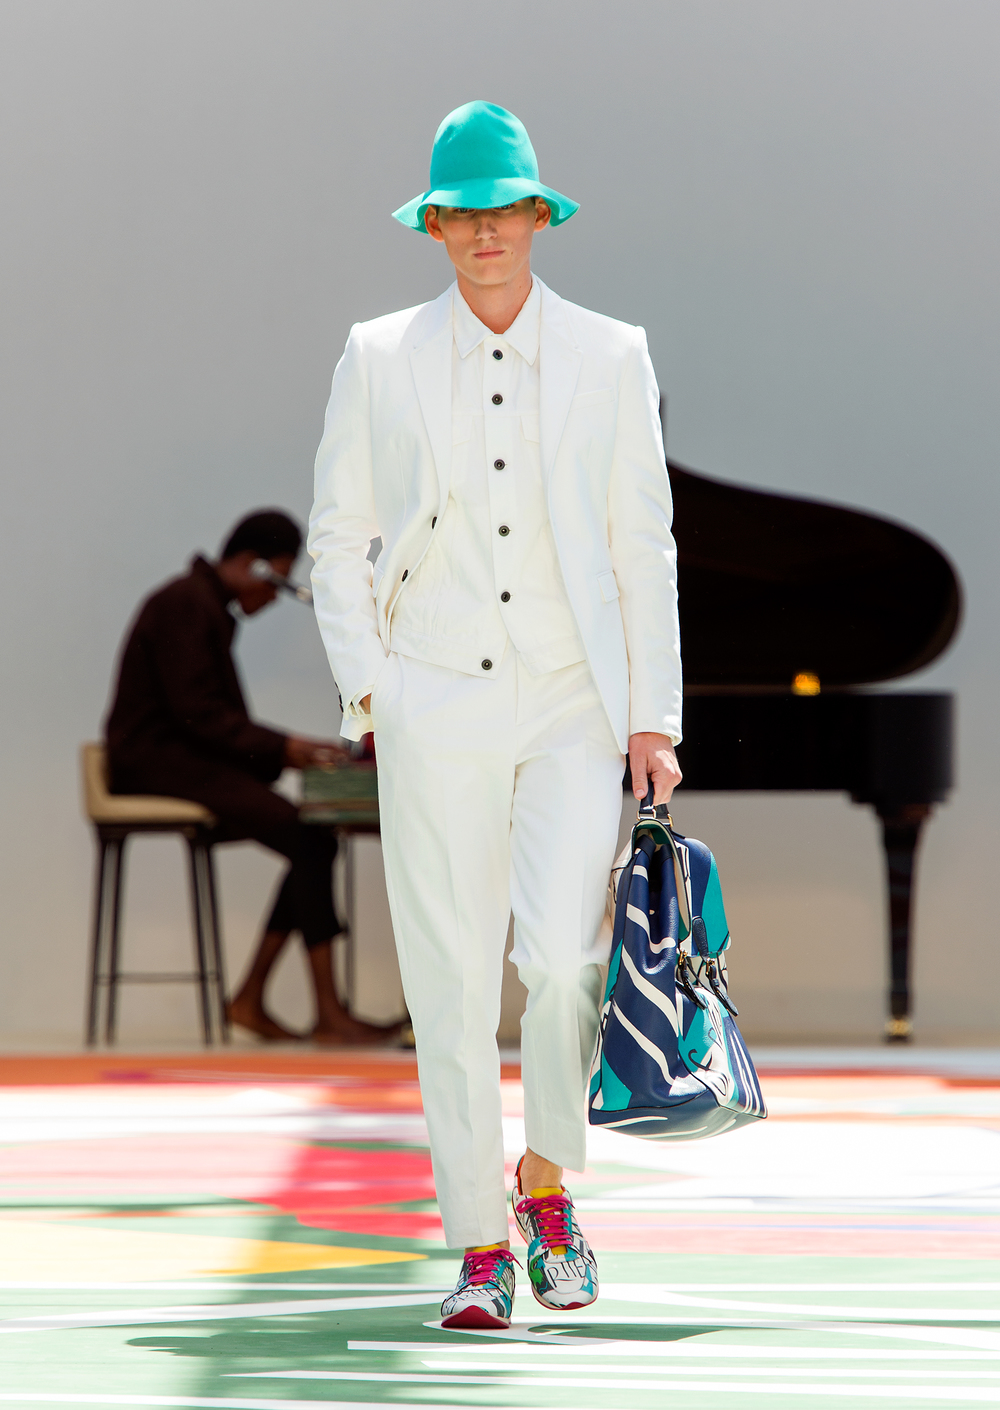 Burberry Prorsum Menswear Spring Summer 2015 Collection - Look 28.jpg